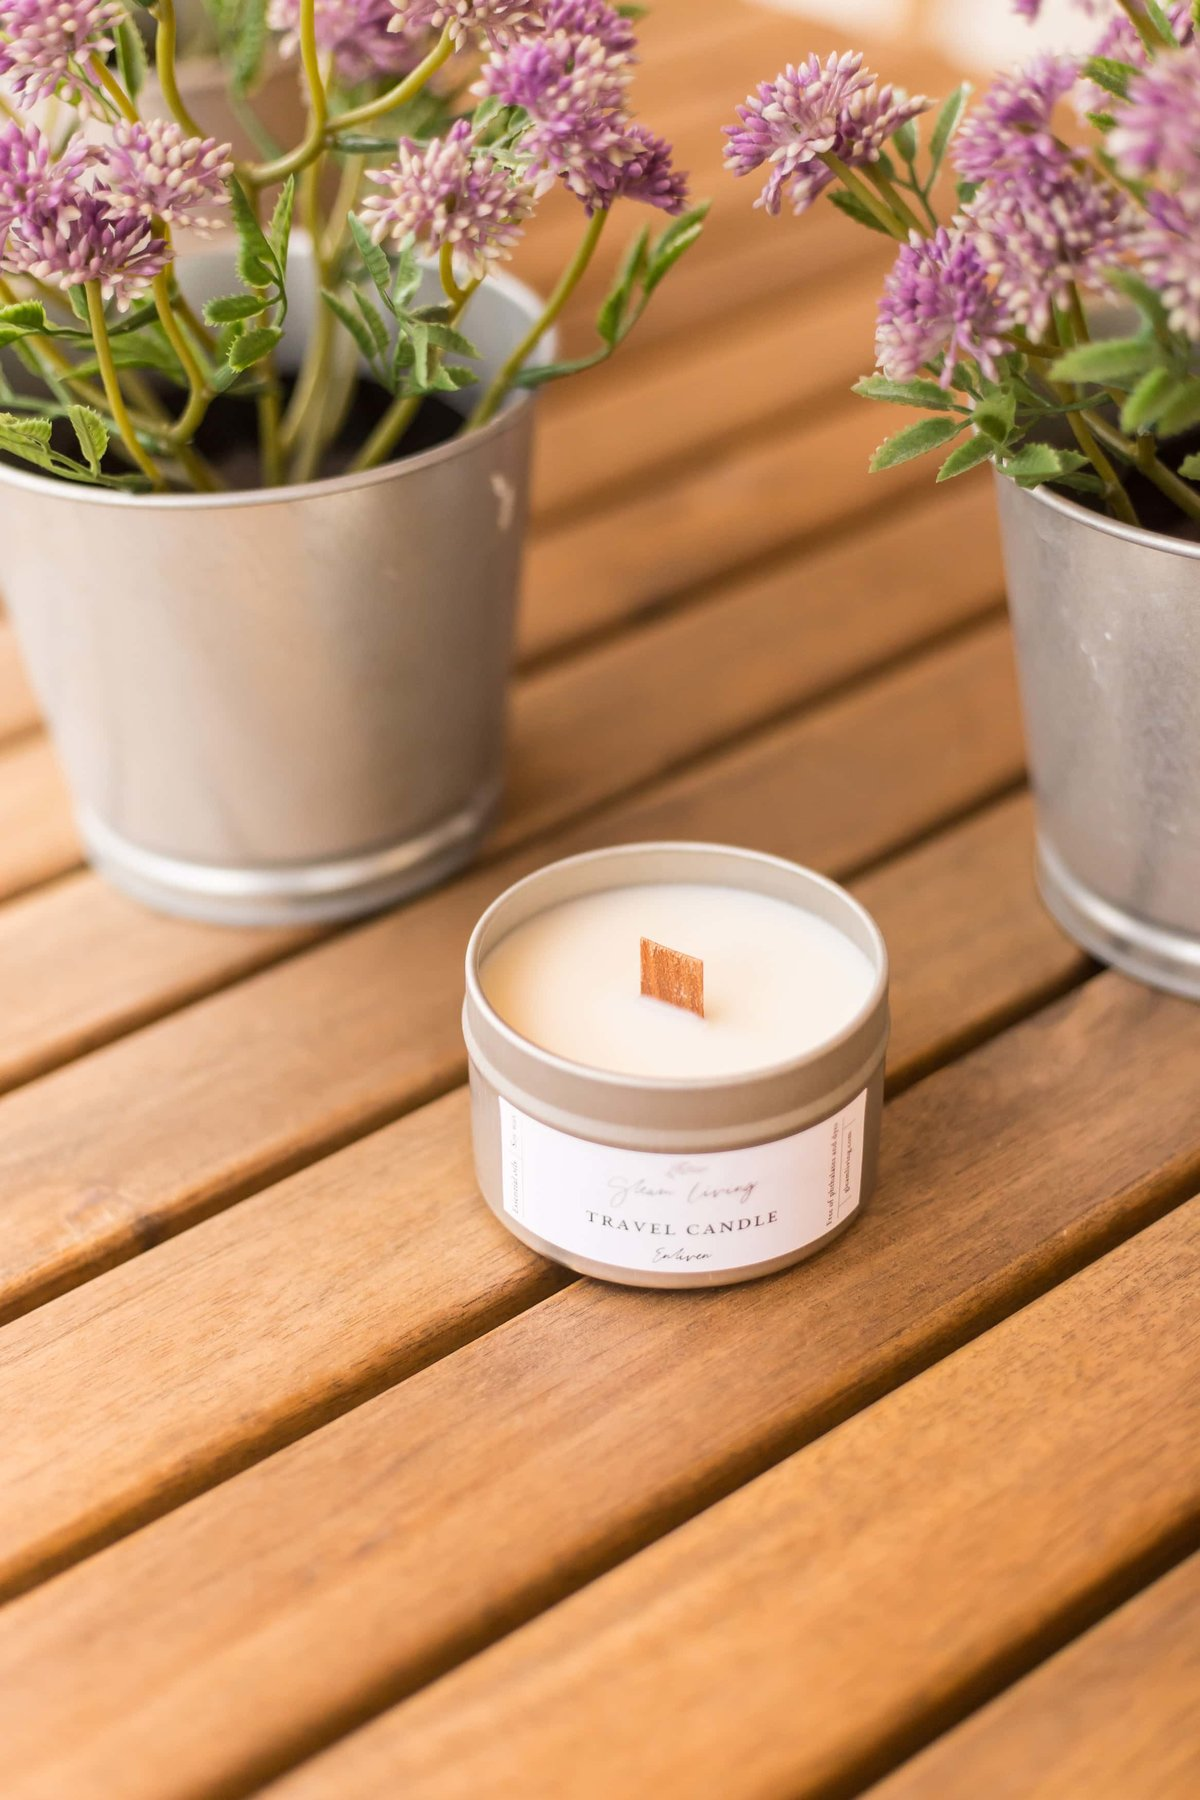 Atelier21 Co - Travel Candle-003